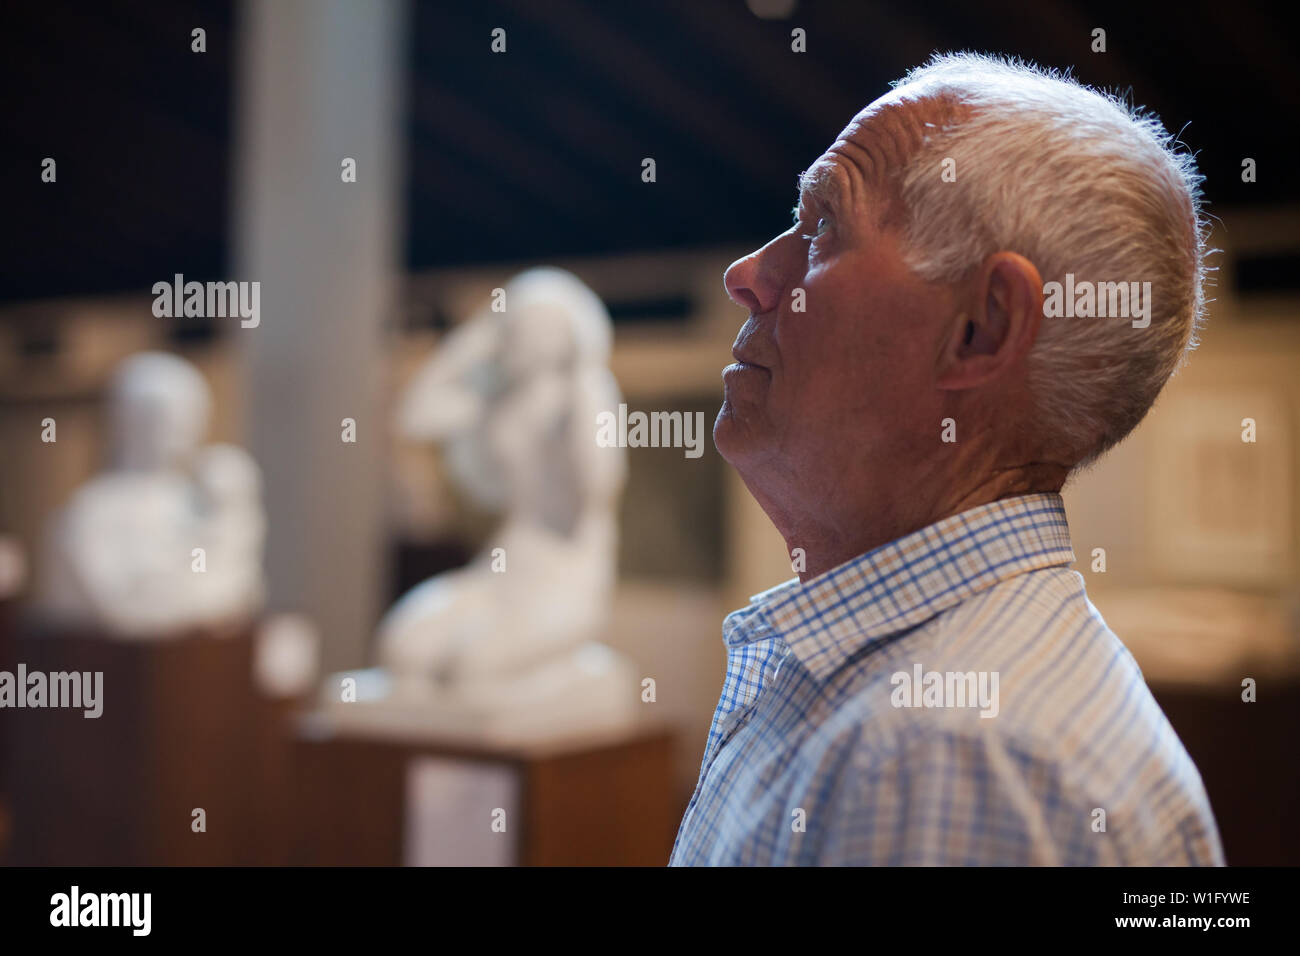 Portrait of mature man at hall of Art Museum among exhibits of antiquity - Stock Image